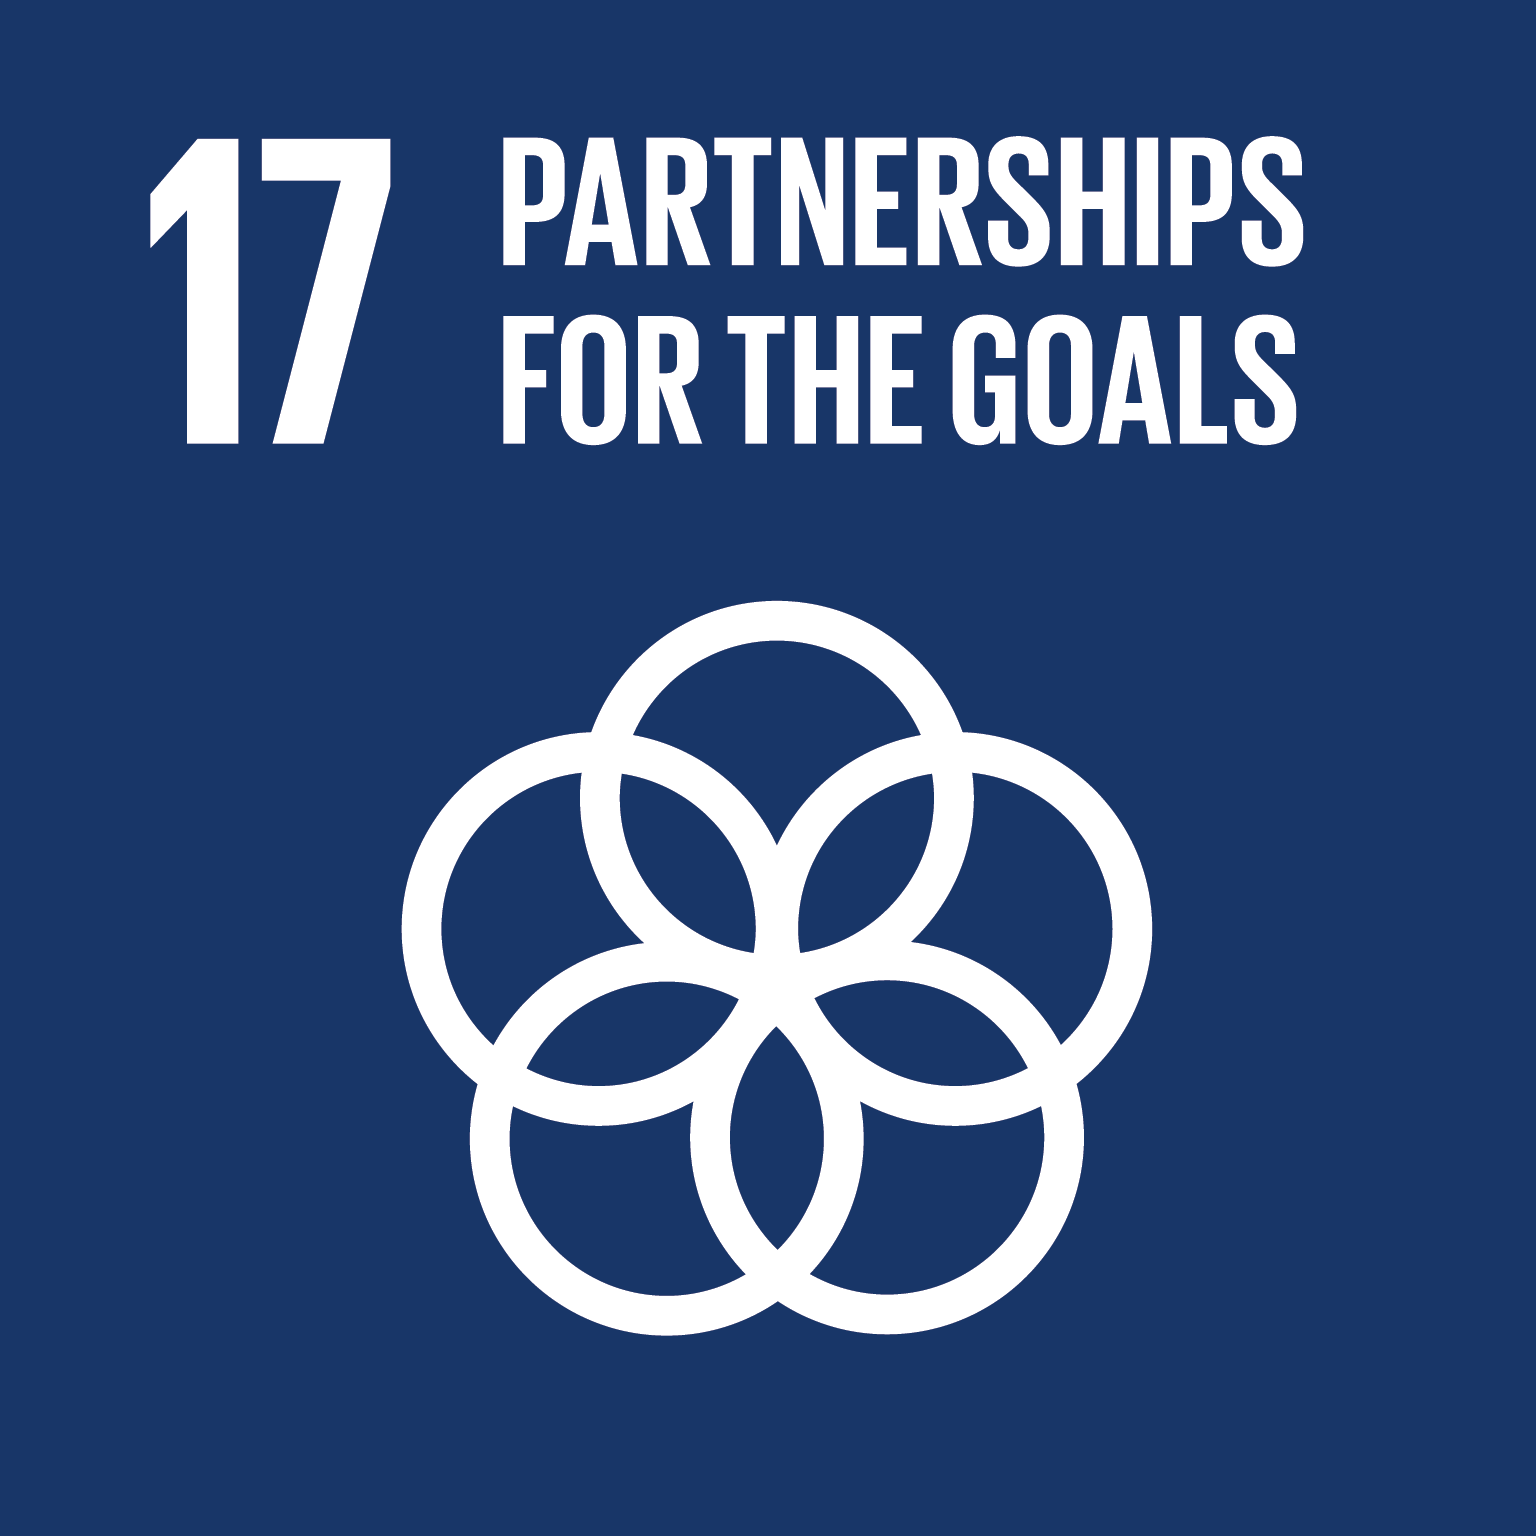 Goal 17: Partnerships The Goals - We work across all sectors and industries. We invite partners to join us in accelerating sustainable development in Asia.